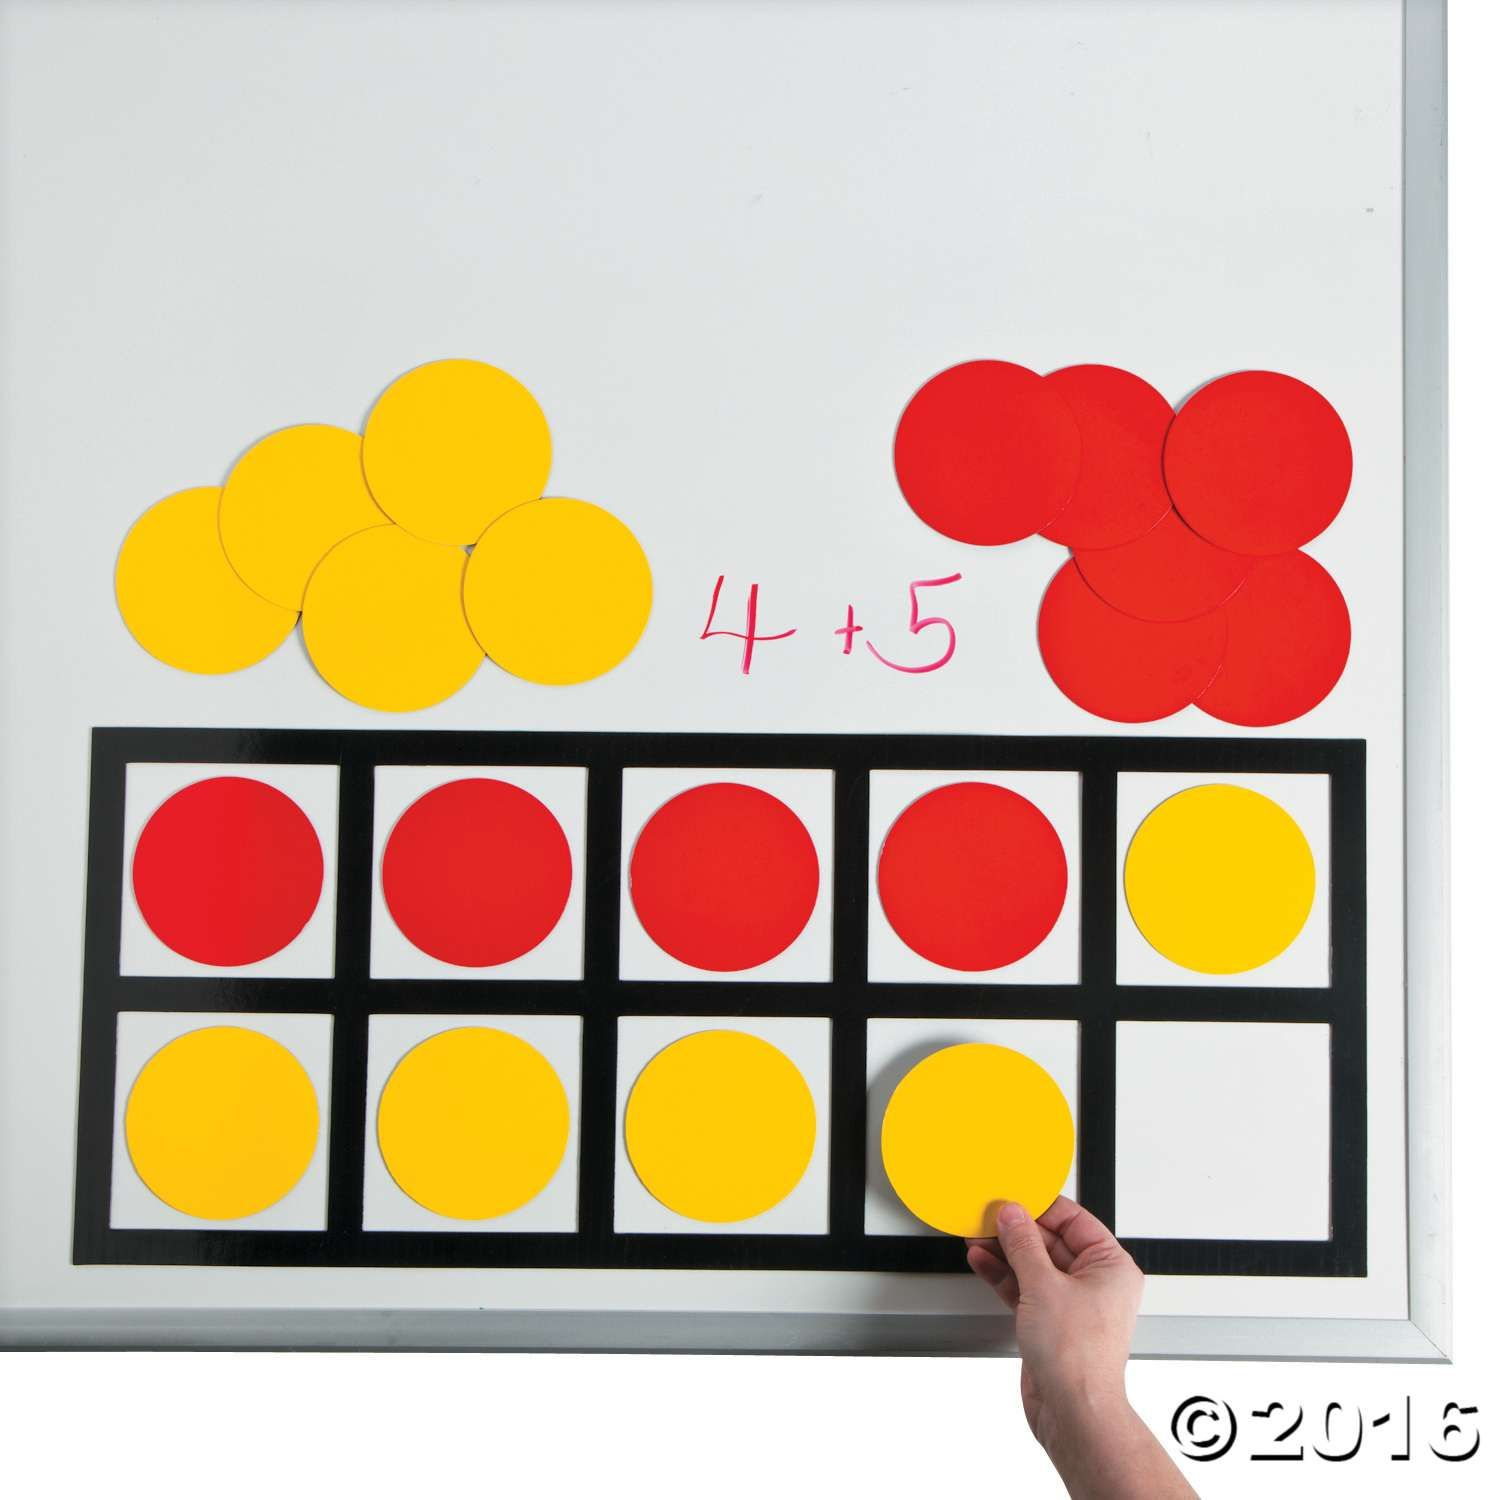 Place These Ten Frame Magnets On Any Magnetic Surface To